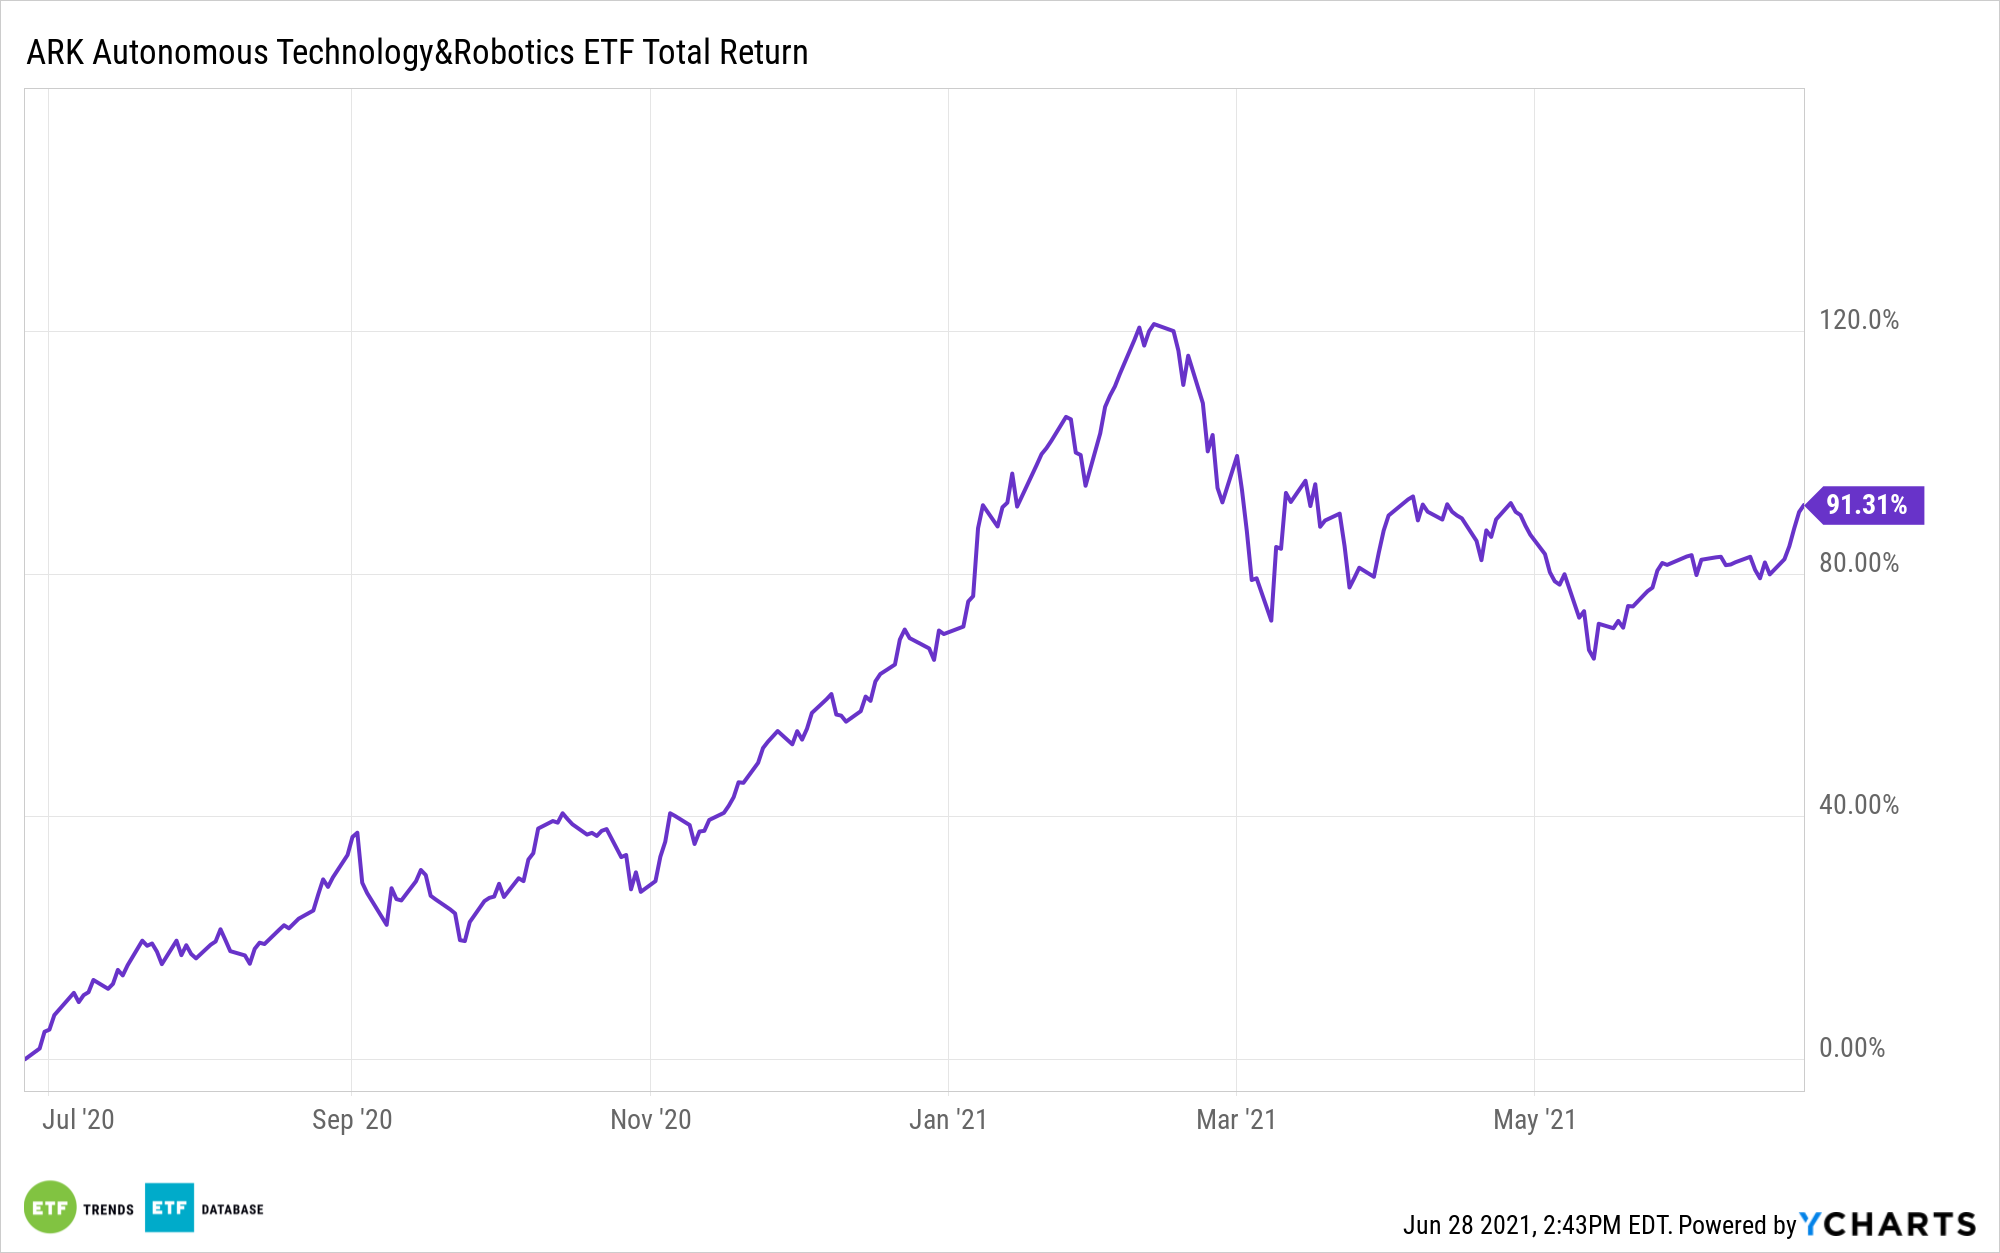 ARKQ 1 Year Performance